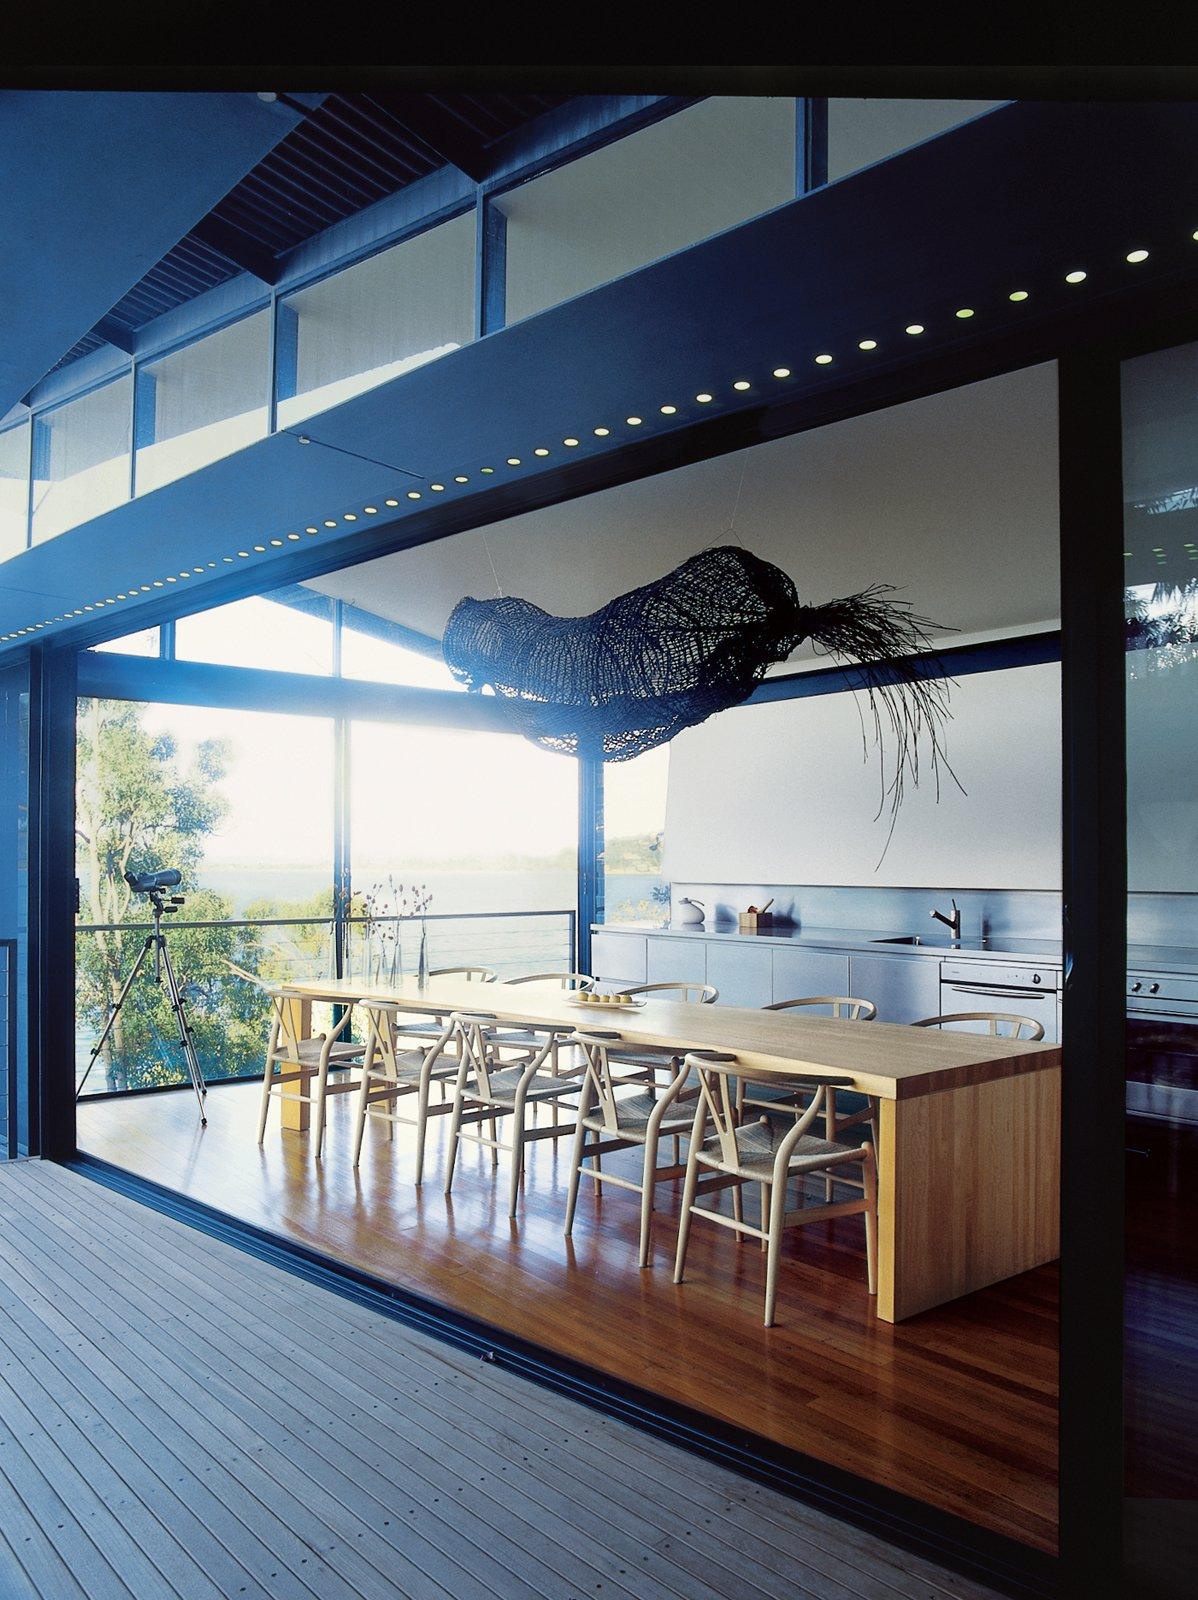 Medium Hardwood Floor, Dining Room, Chair, and Table ૠ  Kitchen from Three Glass-and-Copper Pavilions Conquer the Cliffs